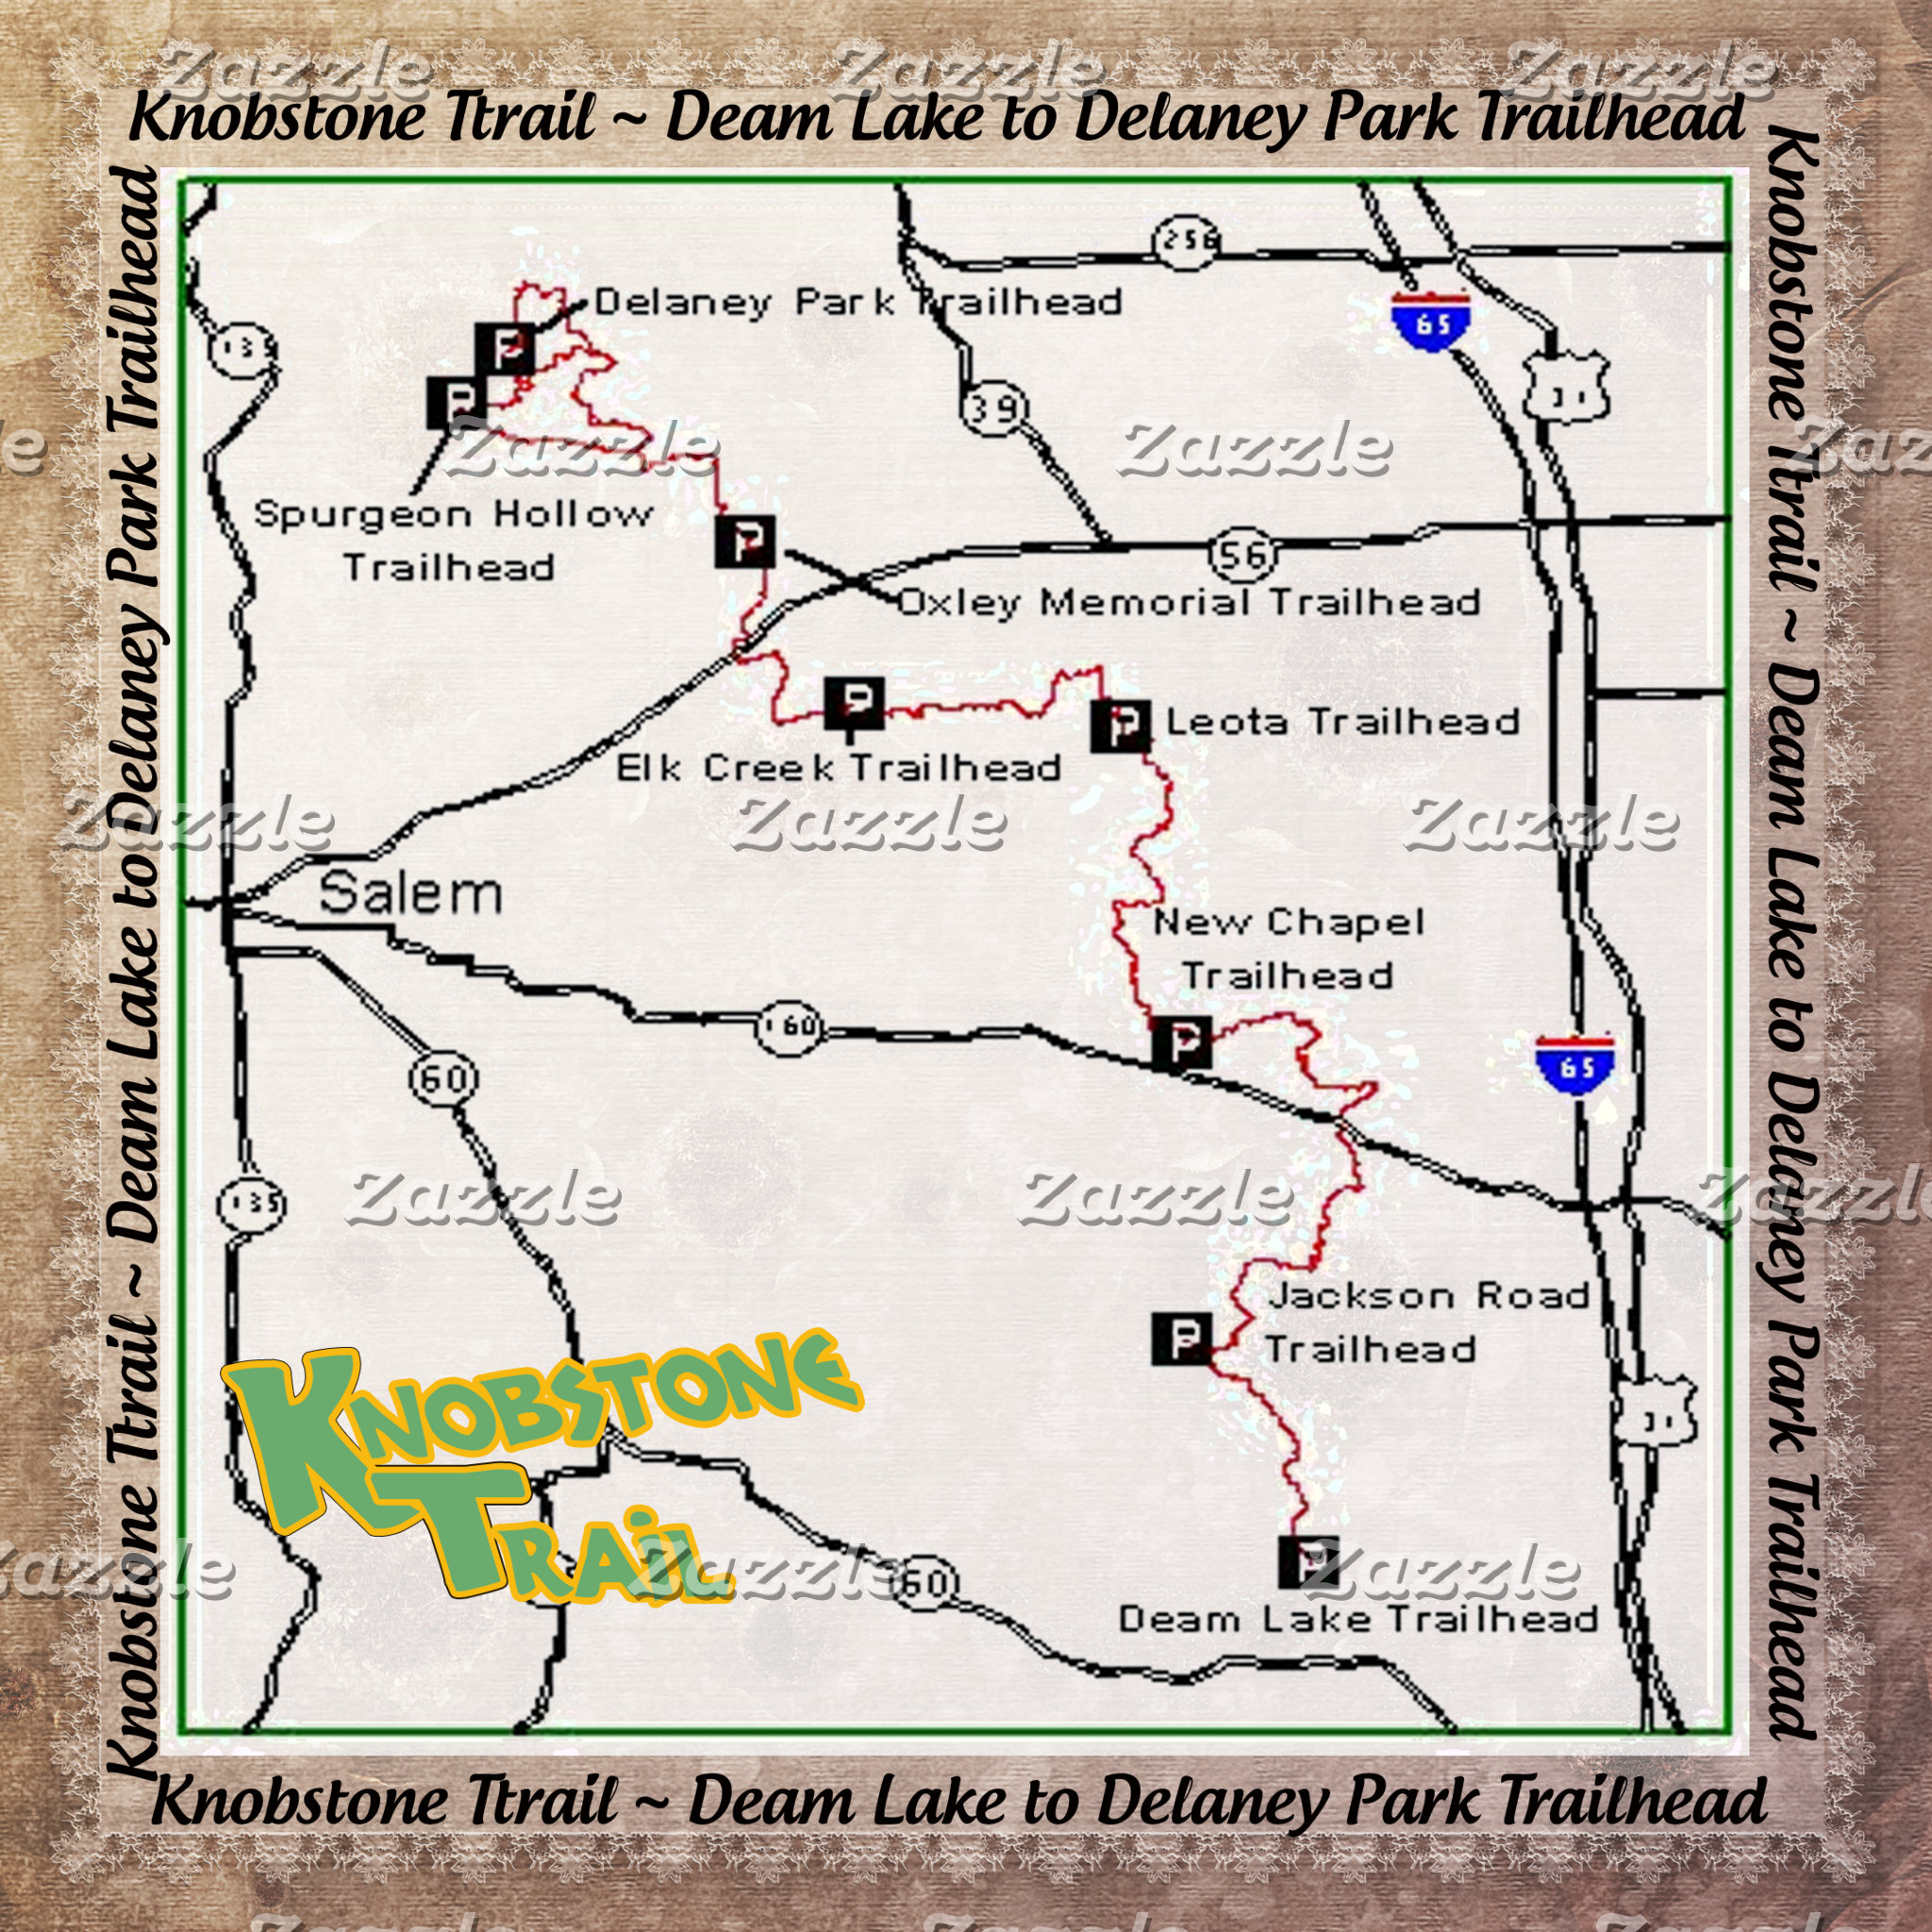 TRAIL MAP KT KNOBSTONE TRAIL DEAM TO DELANEY